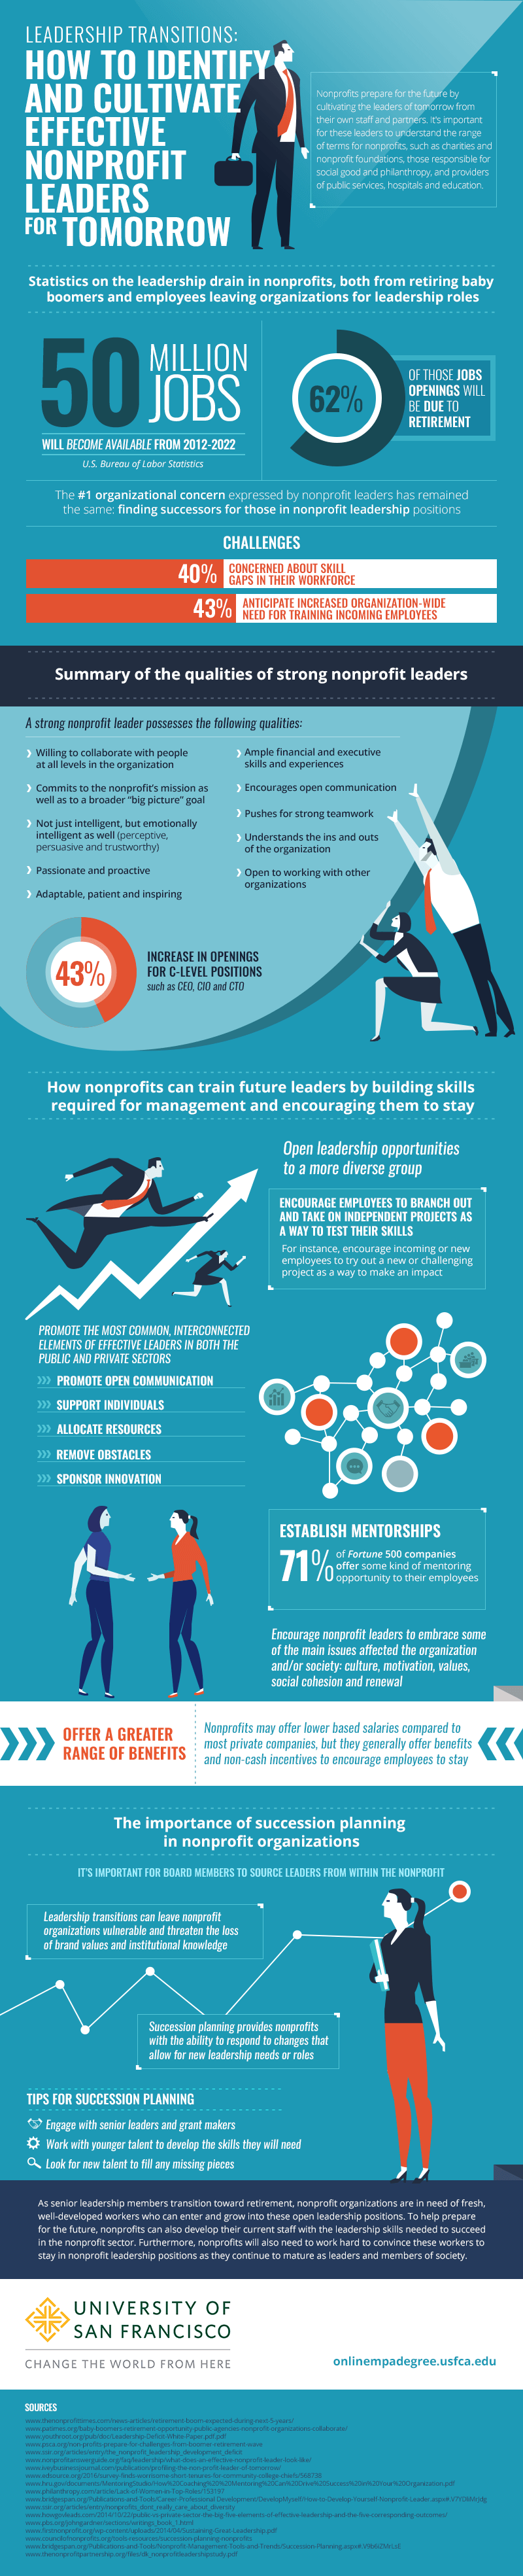 Leadership Transitions: How to Identify and Cultivate Effective Nonprofit Leaders for Tomorrow #Infographic